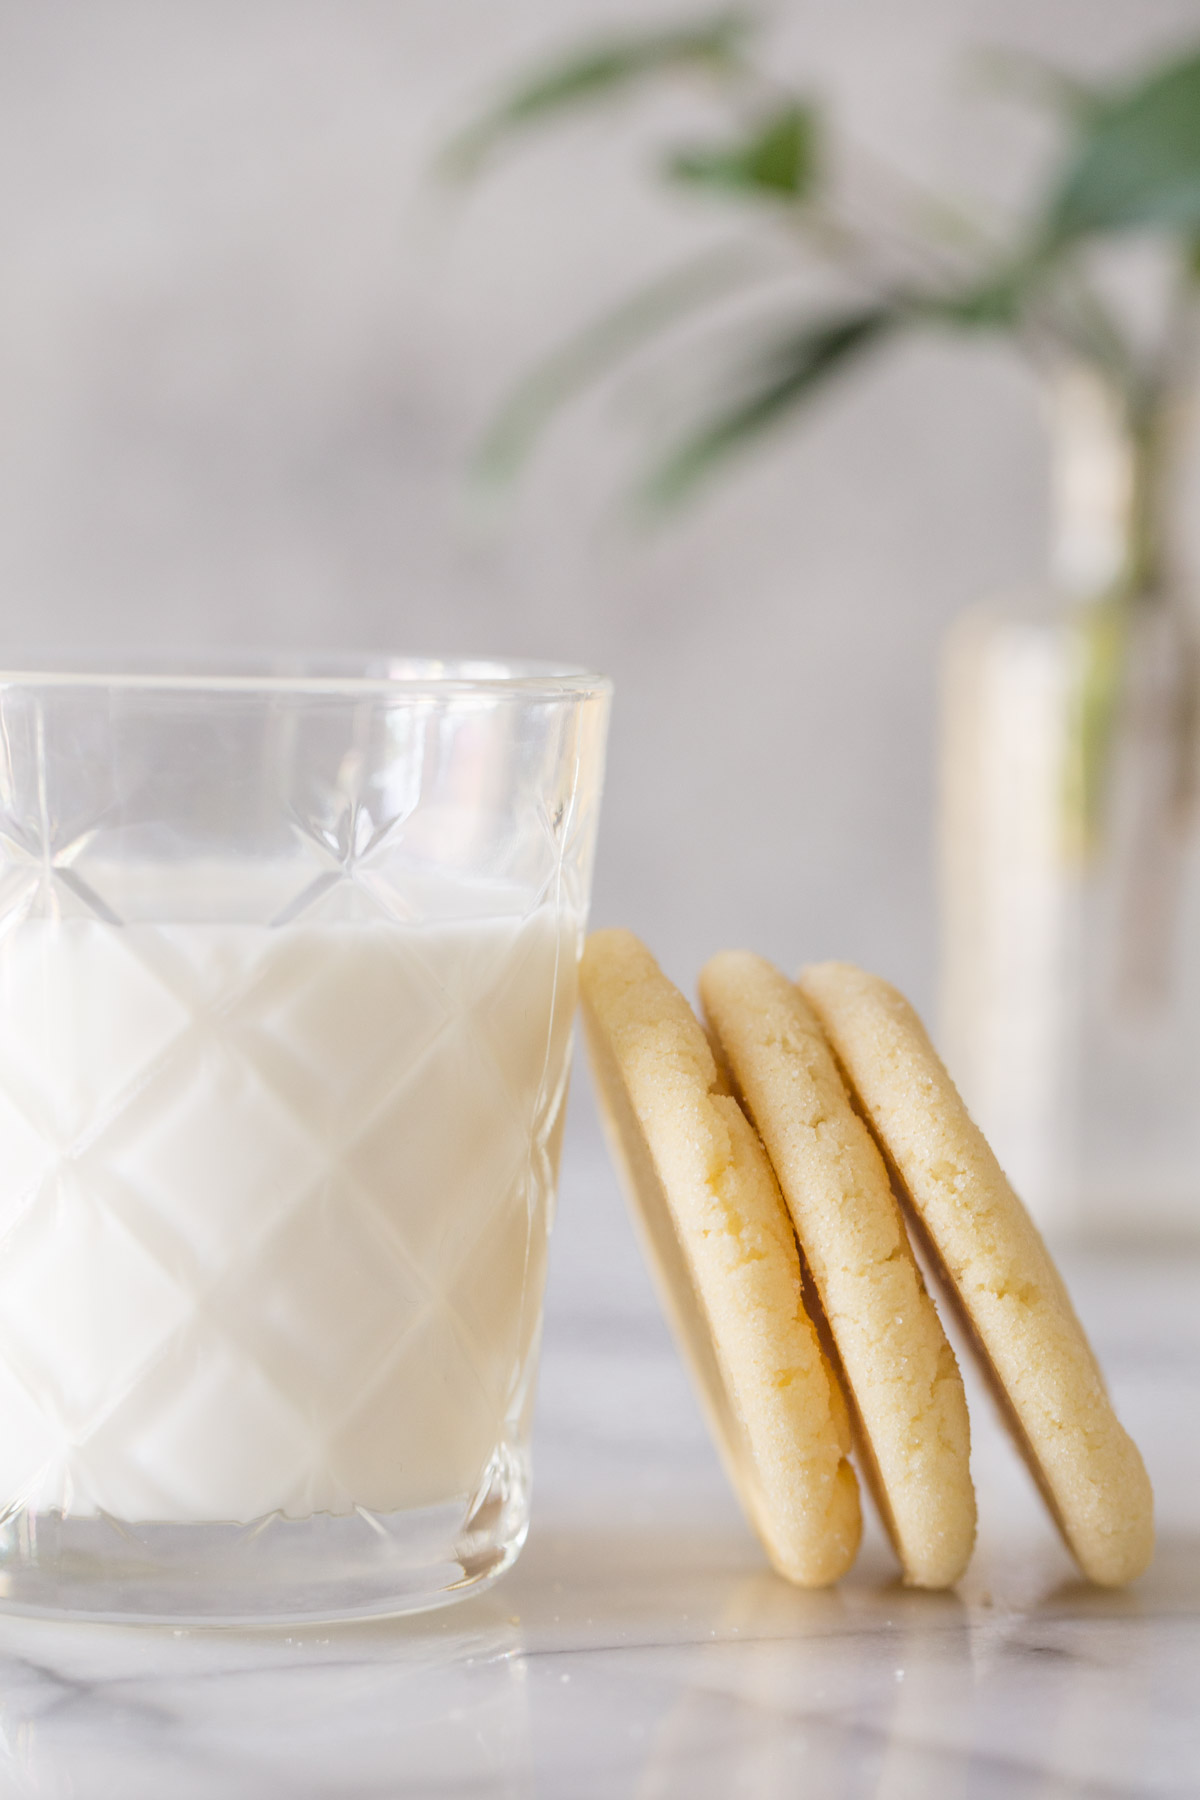 Three Soft and Chewy Sugar Cookies leaning against a glass of milk on a white background.